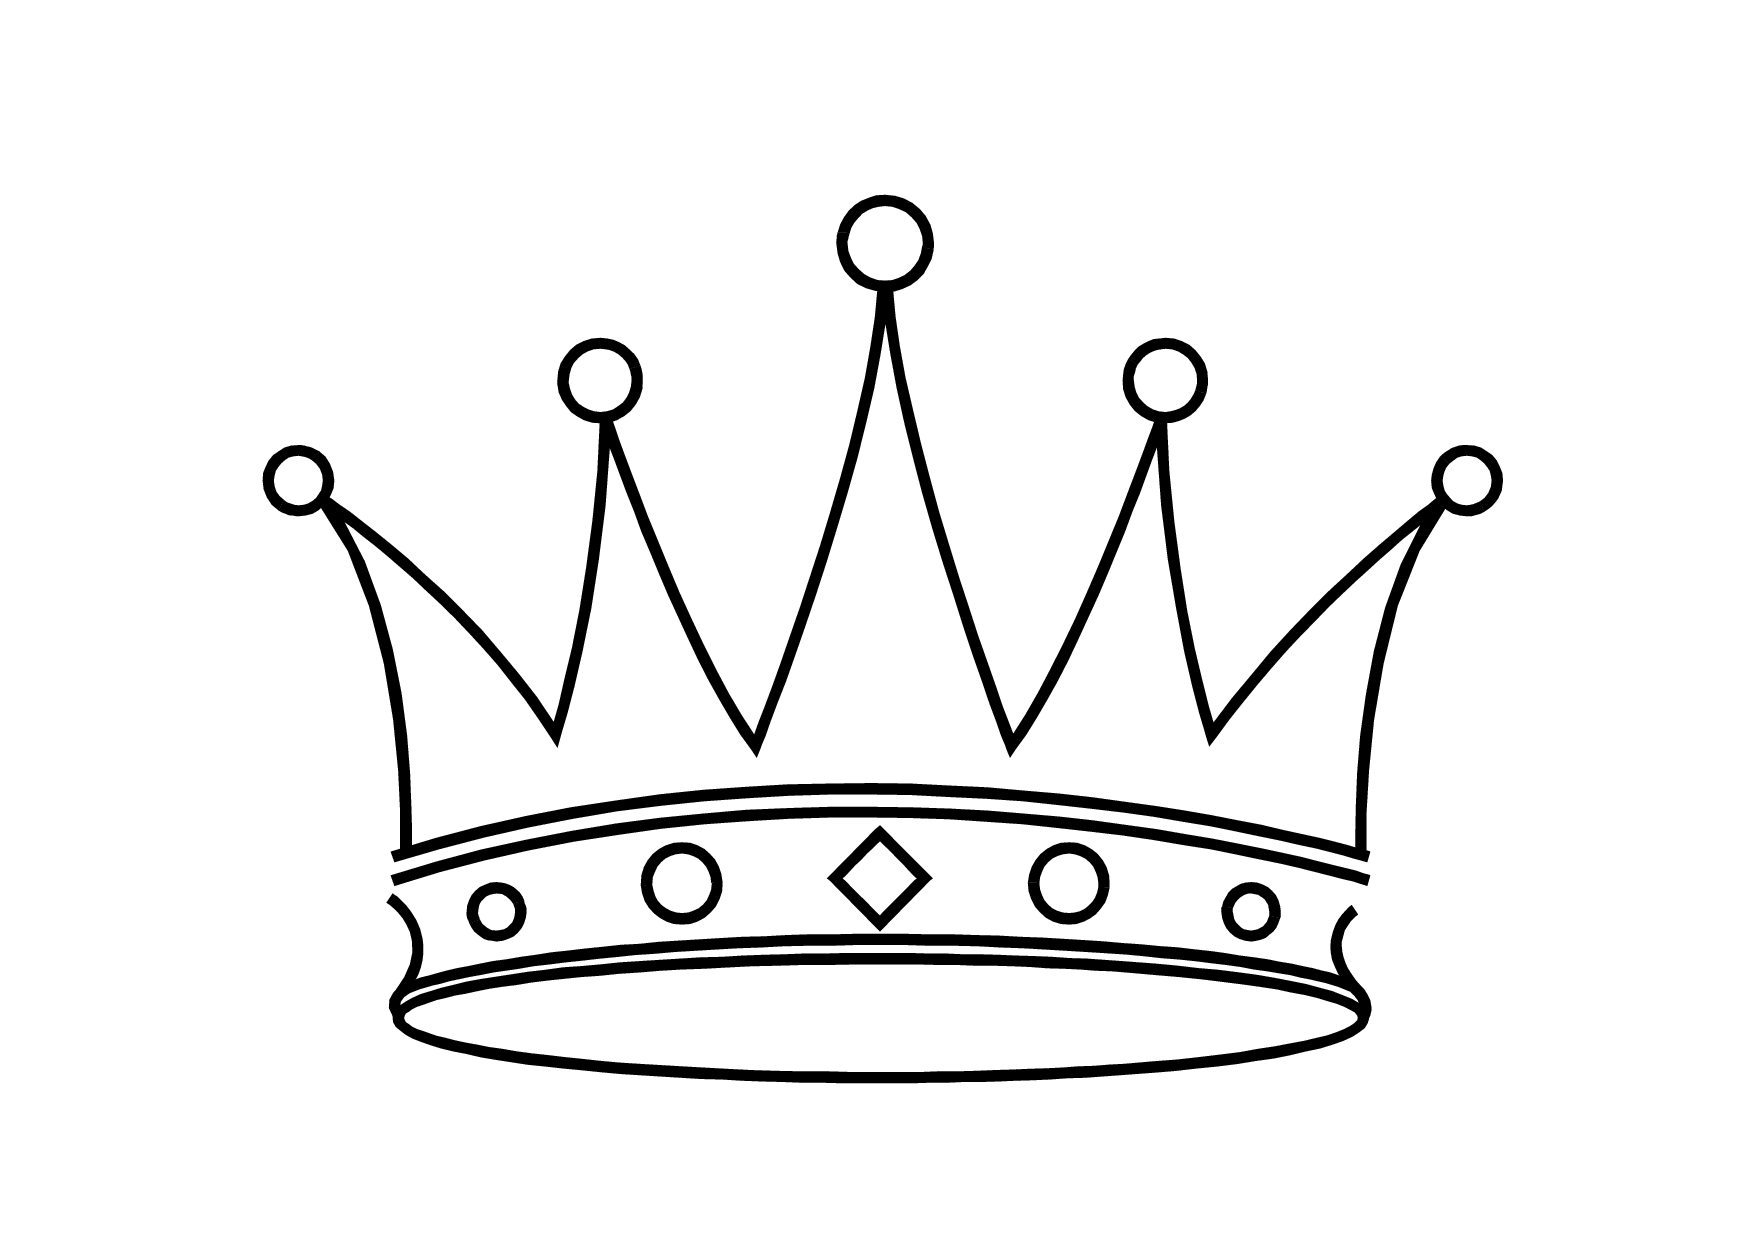 king crown coloring page free coloring pages on masivy world ...